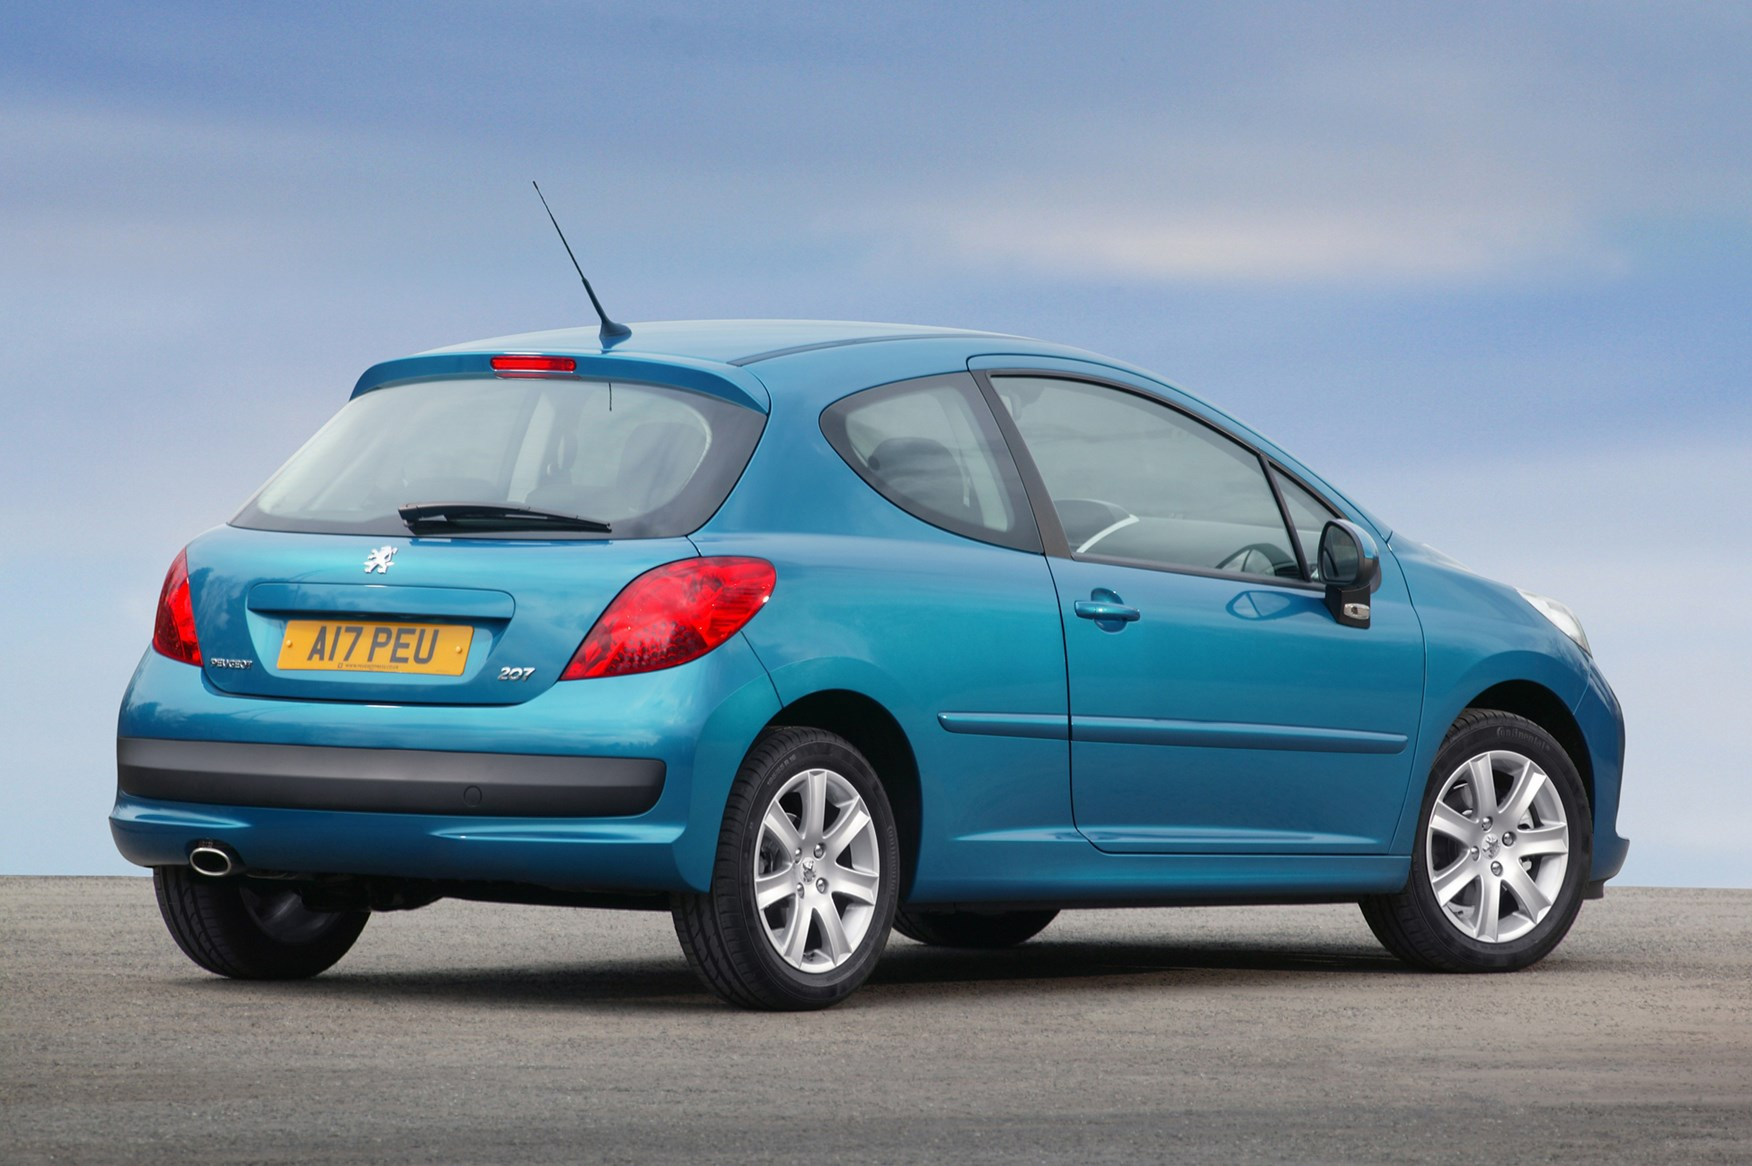 02 peugeot 207 hatchback (2006 2012) running costs parkers peugeot 207 fuse box recall at gsmportal.co